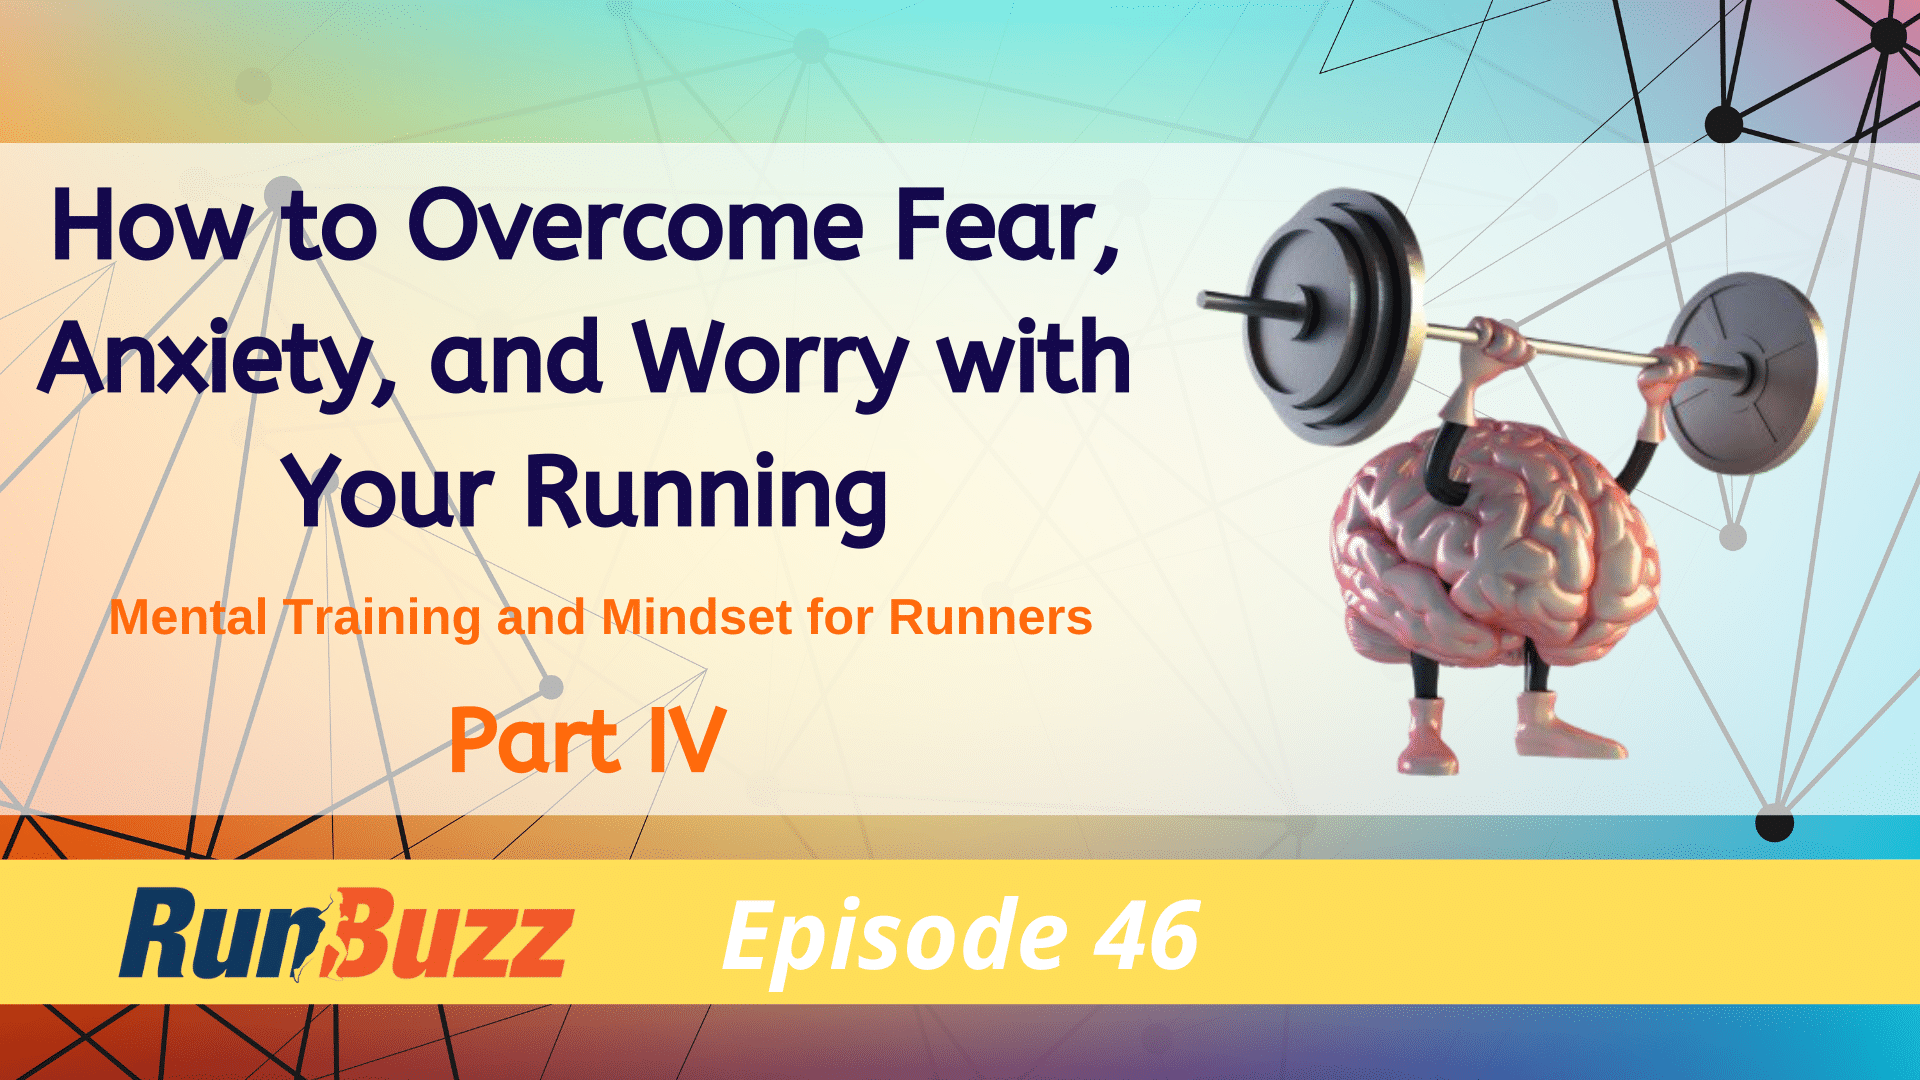 How-to-Overcome-Fear-Anxiety-and-Worry-with-Your-Running